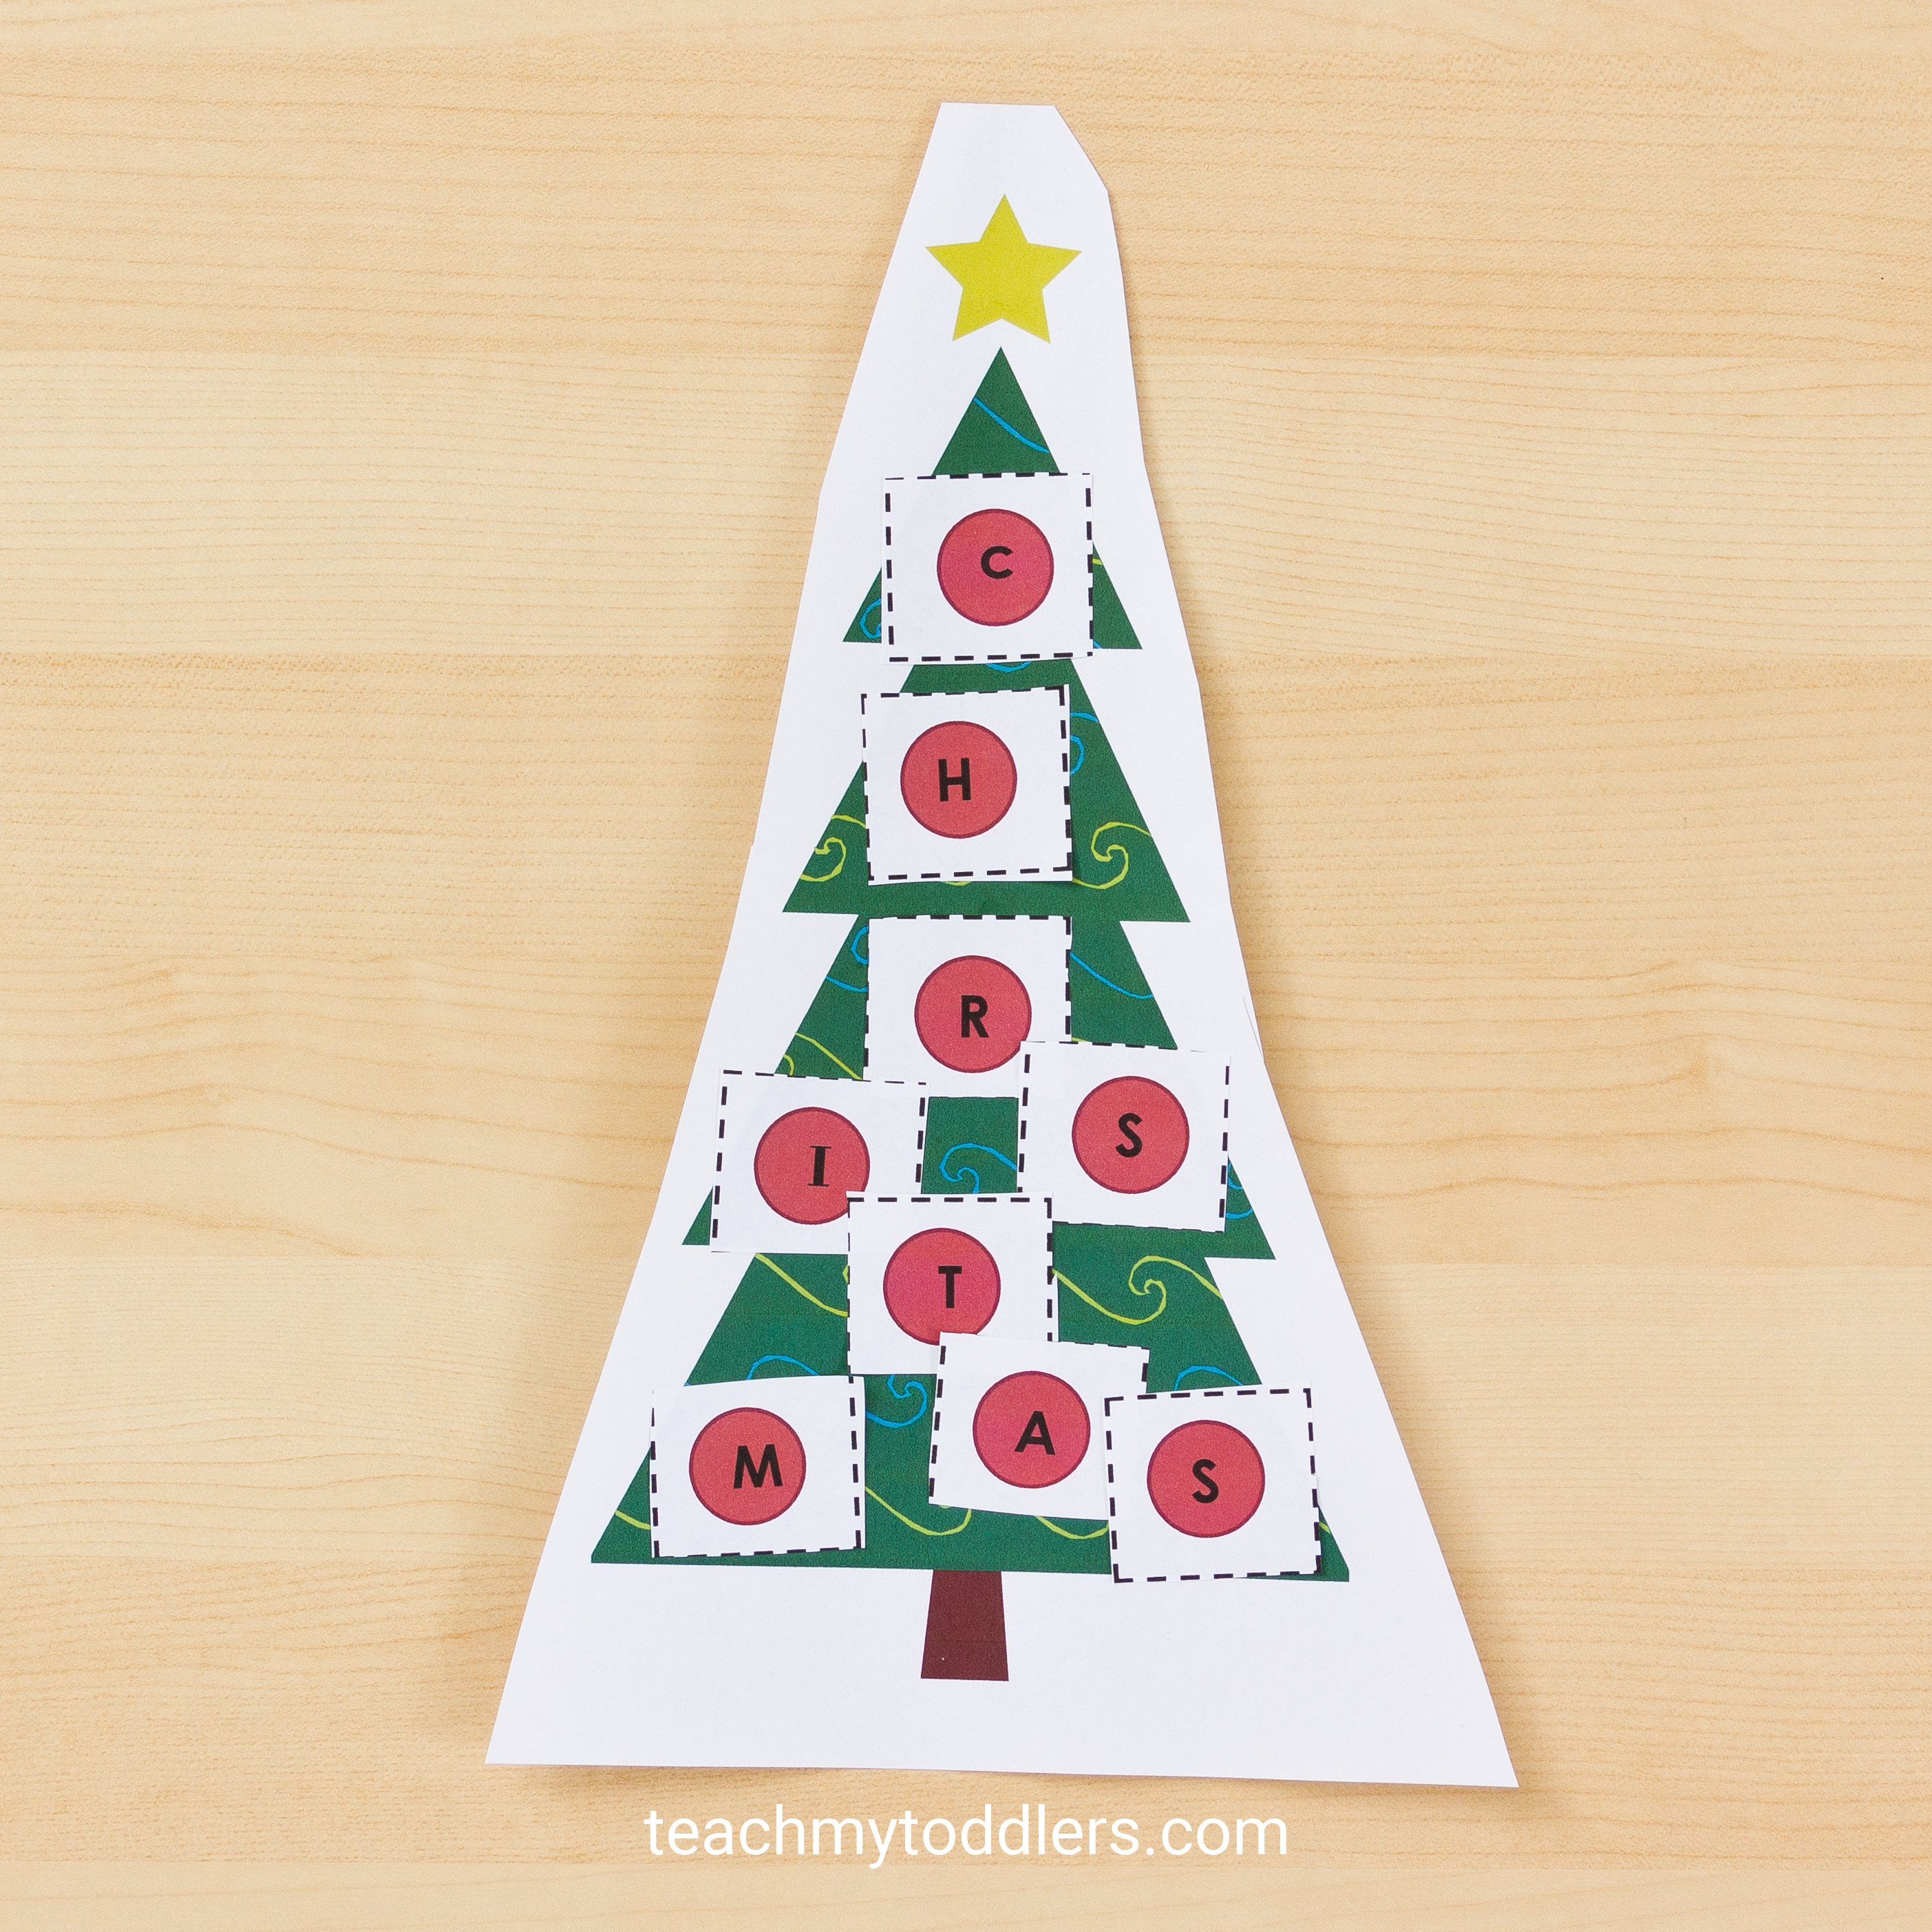 Discover how to use these christmas tree activities to teach toddlers letters and colors